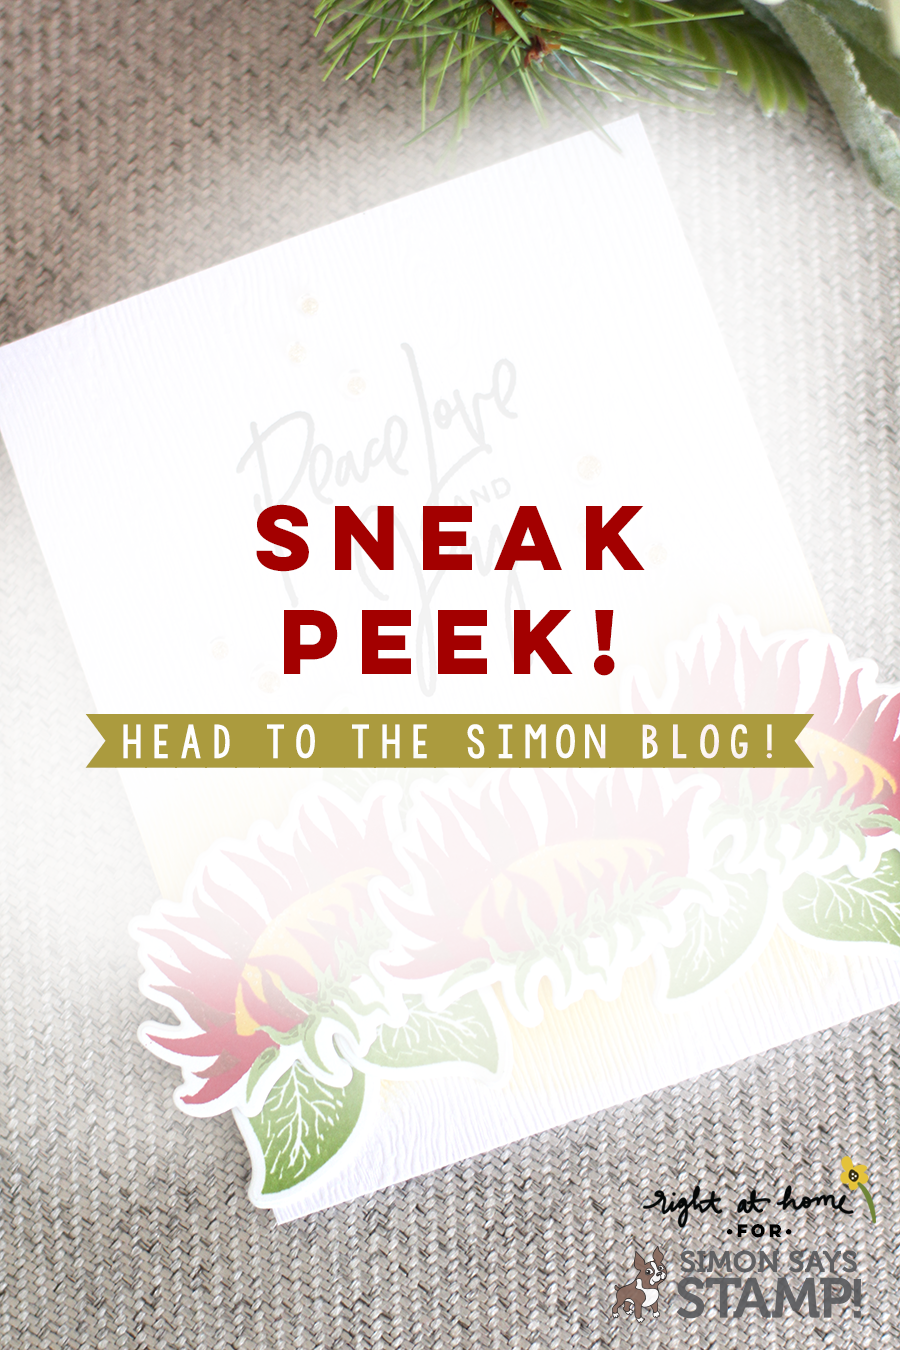 Right at Home for Simon Says Stamp Sneak Peek // Head to www.simonsaysstampblog.com for the full card!